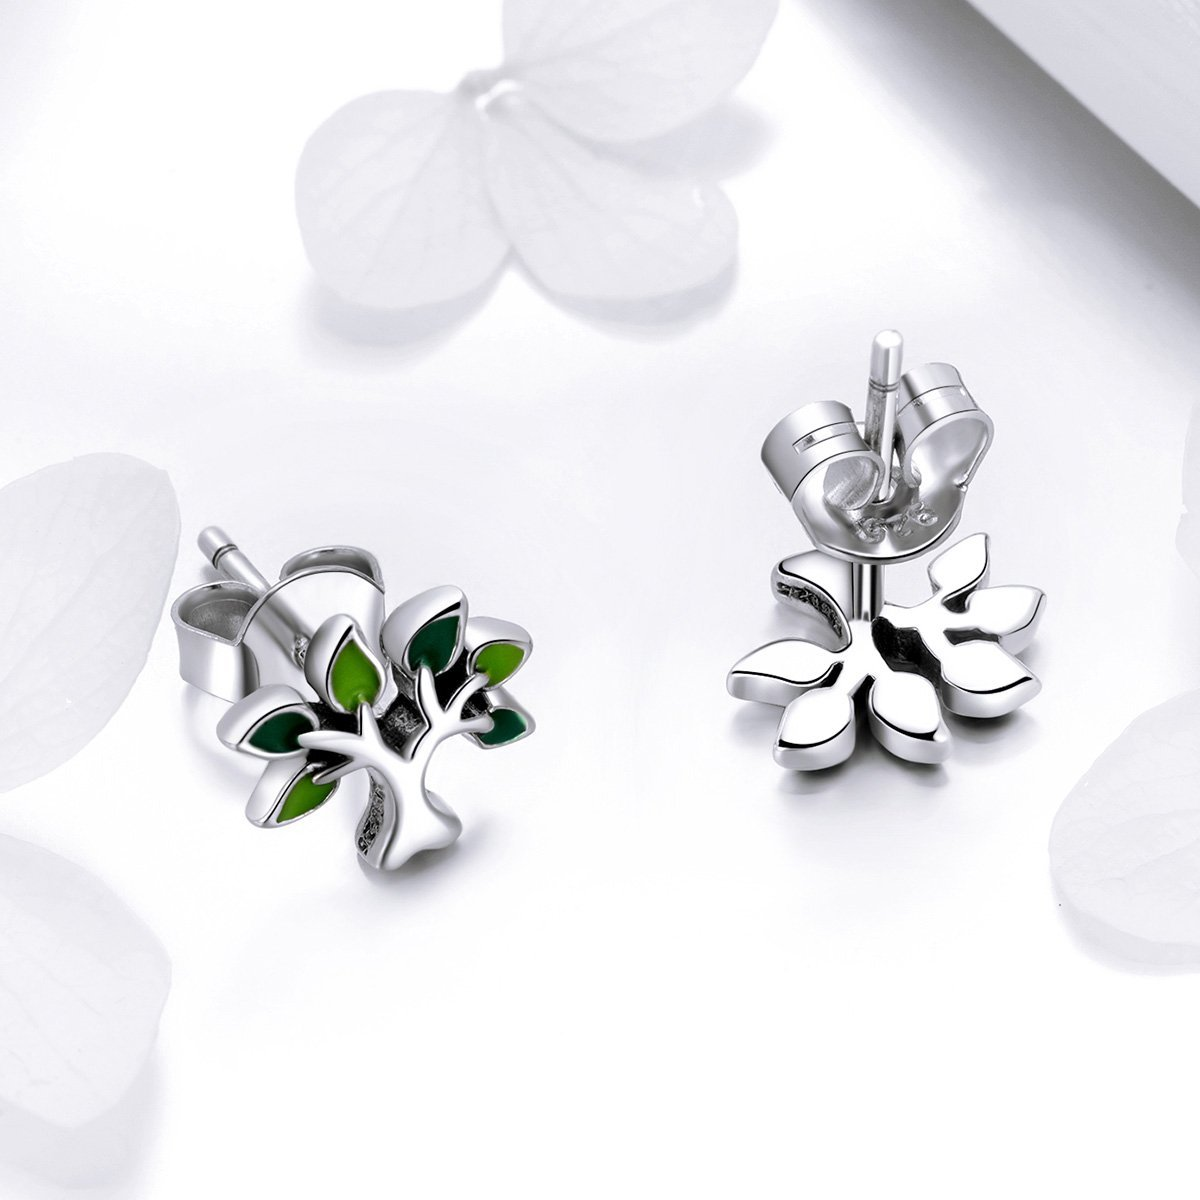 BISAER Tree of Life 925 Sterling Silver Stud Earrings with Green Enamel Leaves, Cute Post Stud Earring Hypoallergenic Jewelry for Women. by BISAER (Image #4)